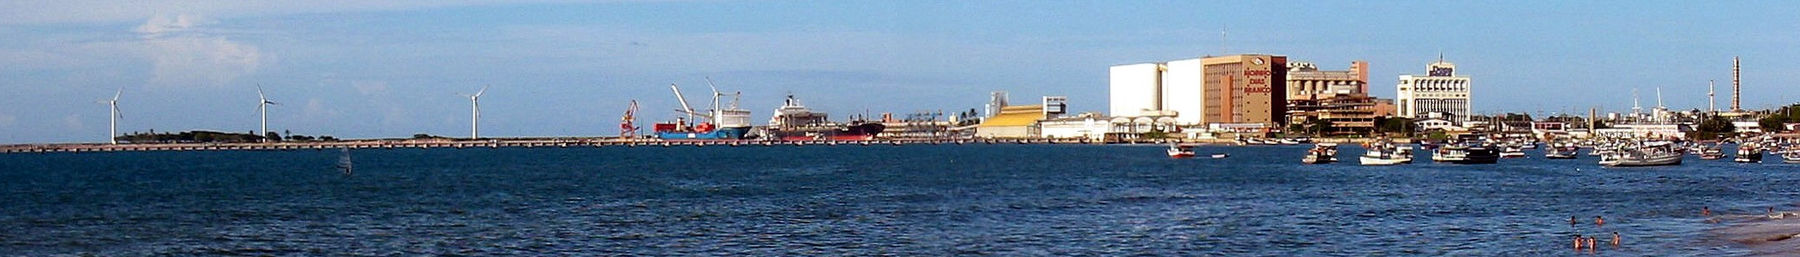 Fortaleza banner Harbour and boats.jpg